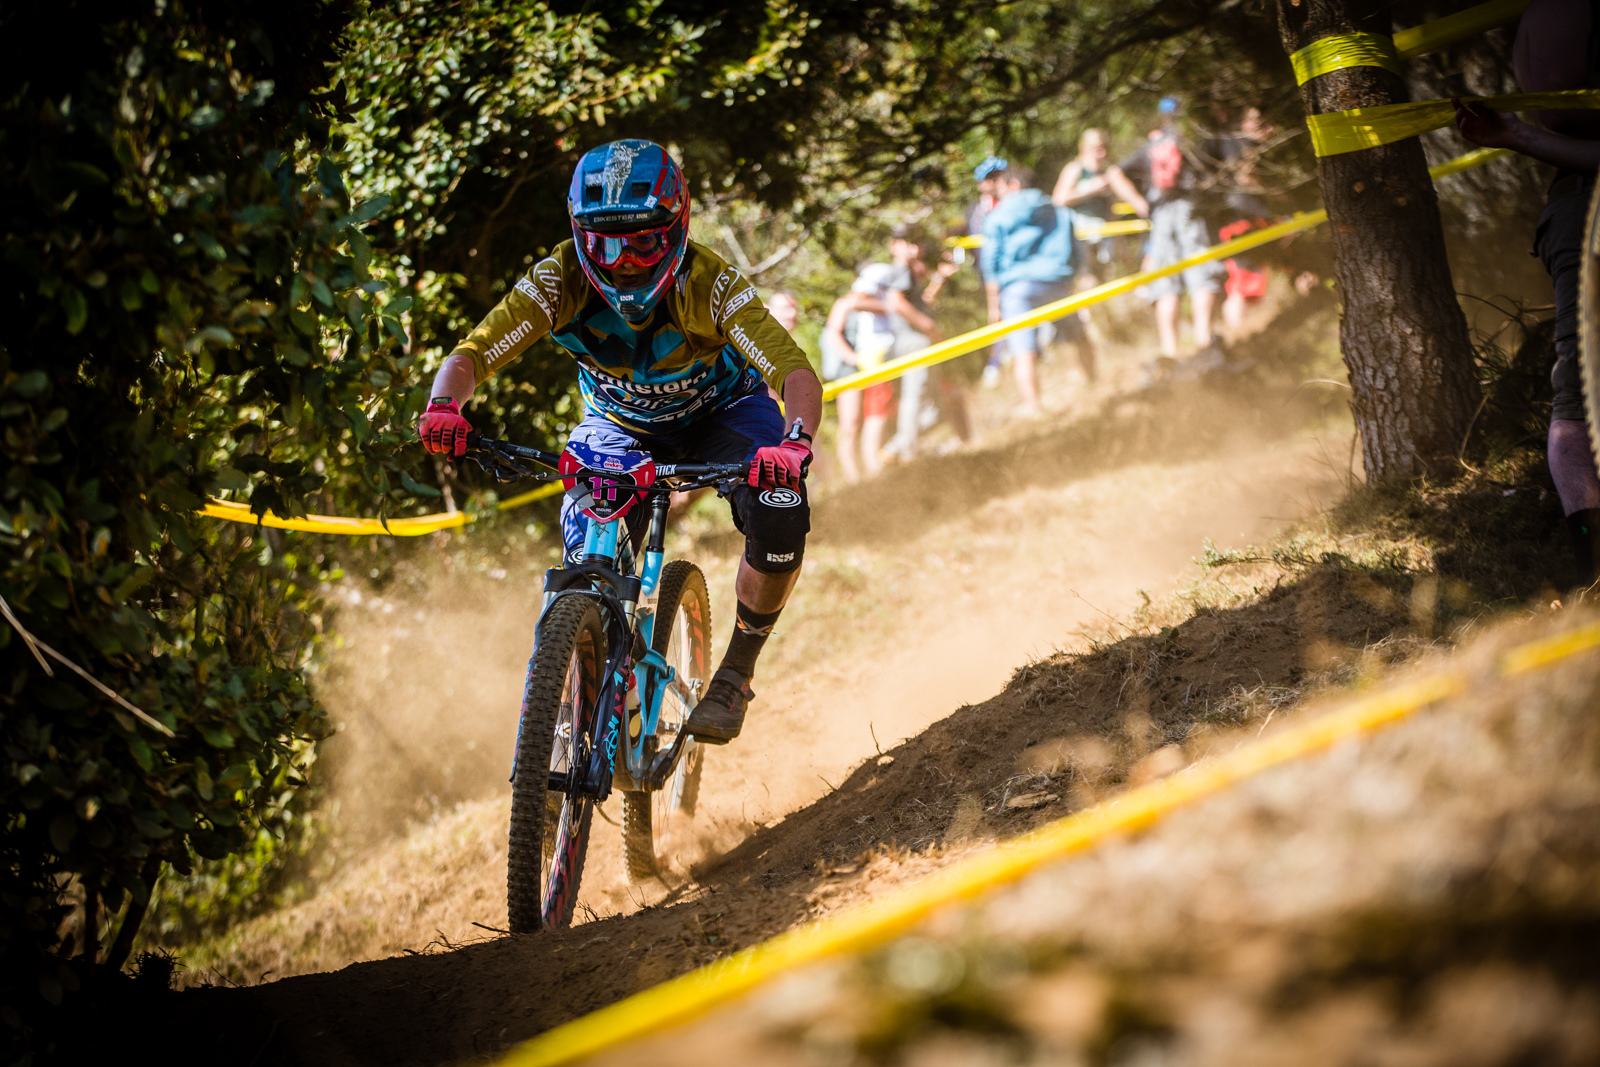 Caro Gehrig also got her best EWS result this past weekend she rode consistently all weekend to secure the 8th spot in GC.